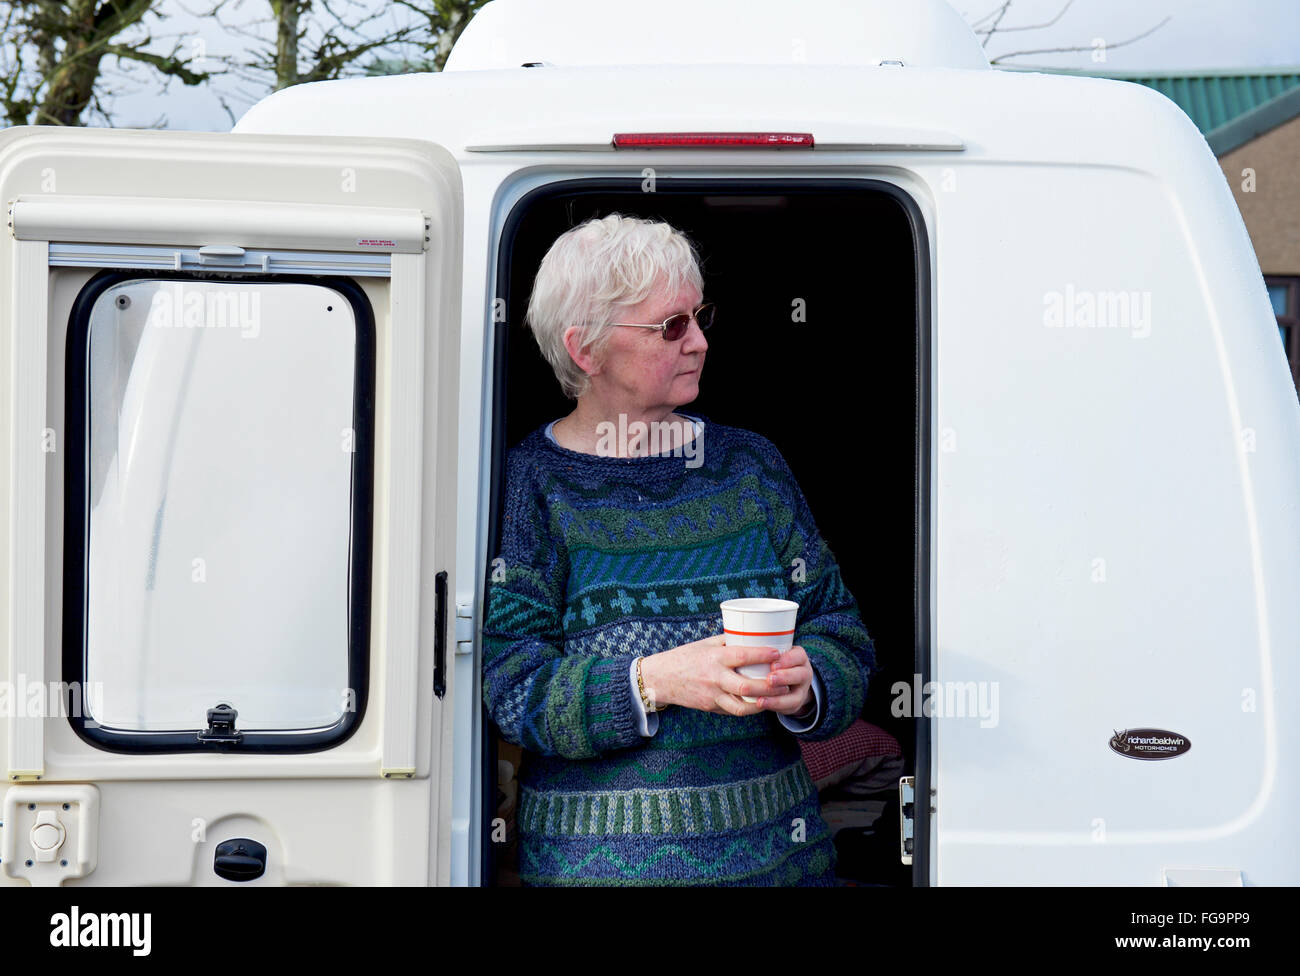 Senior woman at the door of her Romahome Duo, a small motorhome, England UK - Stock Image